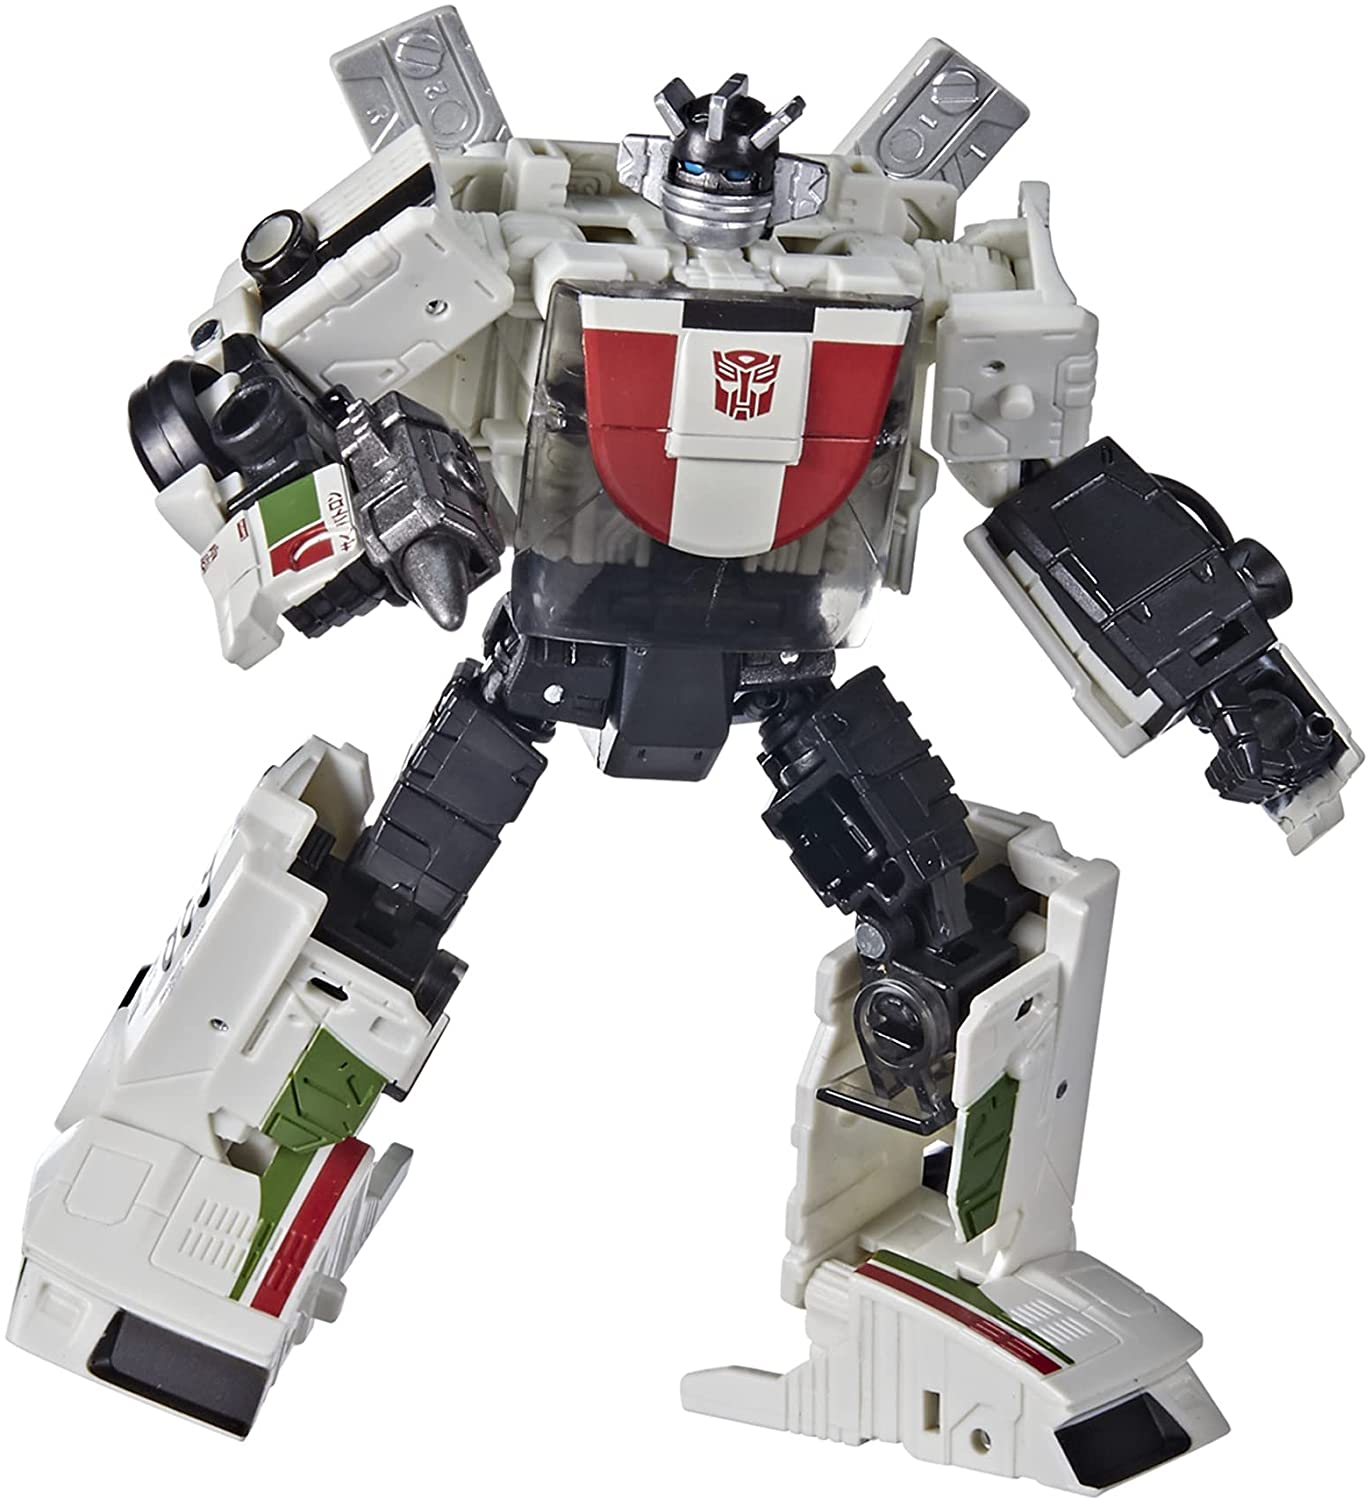 Transformers Toys Generations War for Cybertron: Kingdom Deluxe WFC-K24...